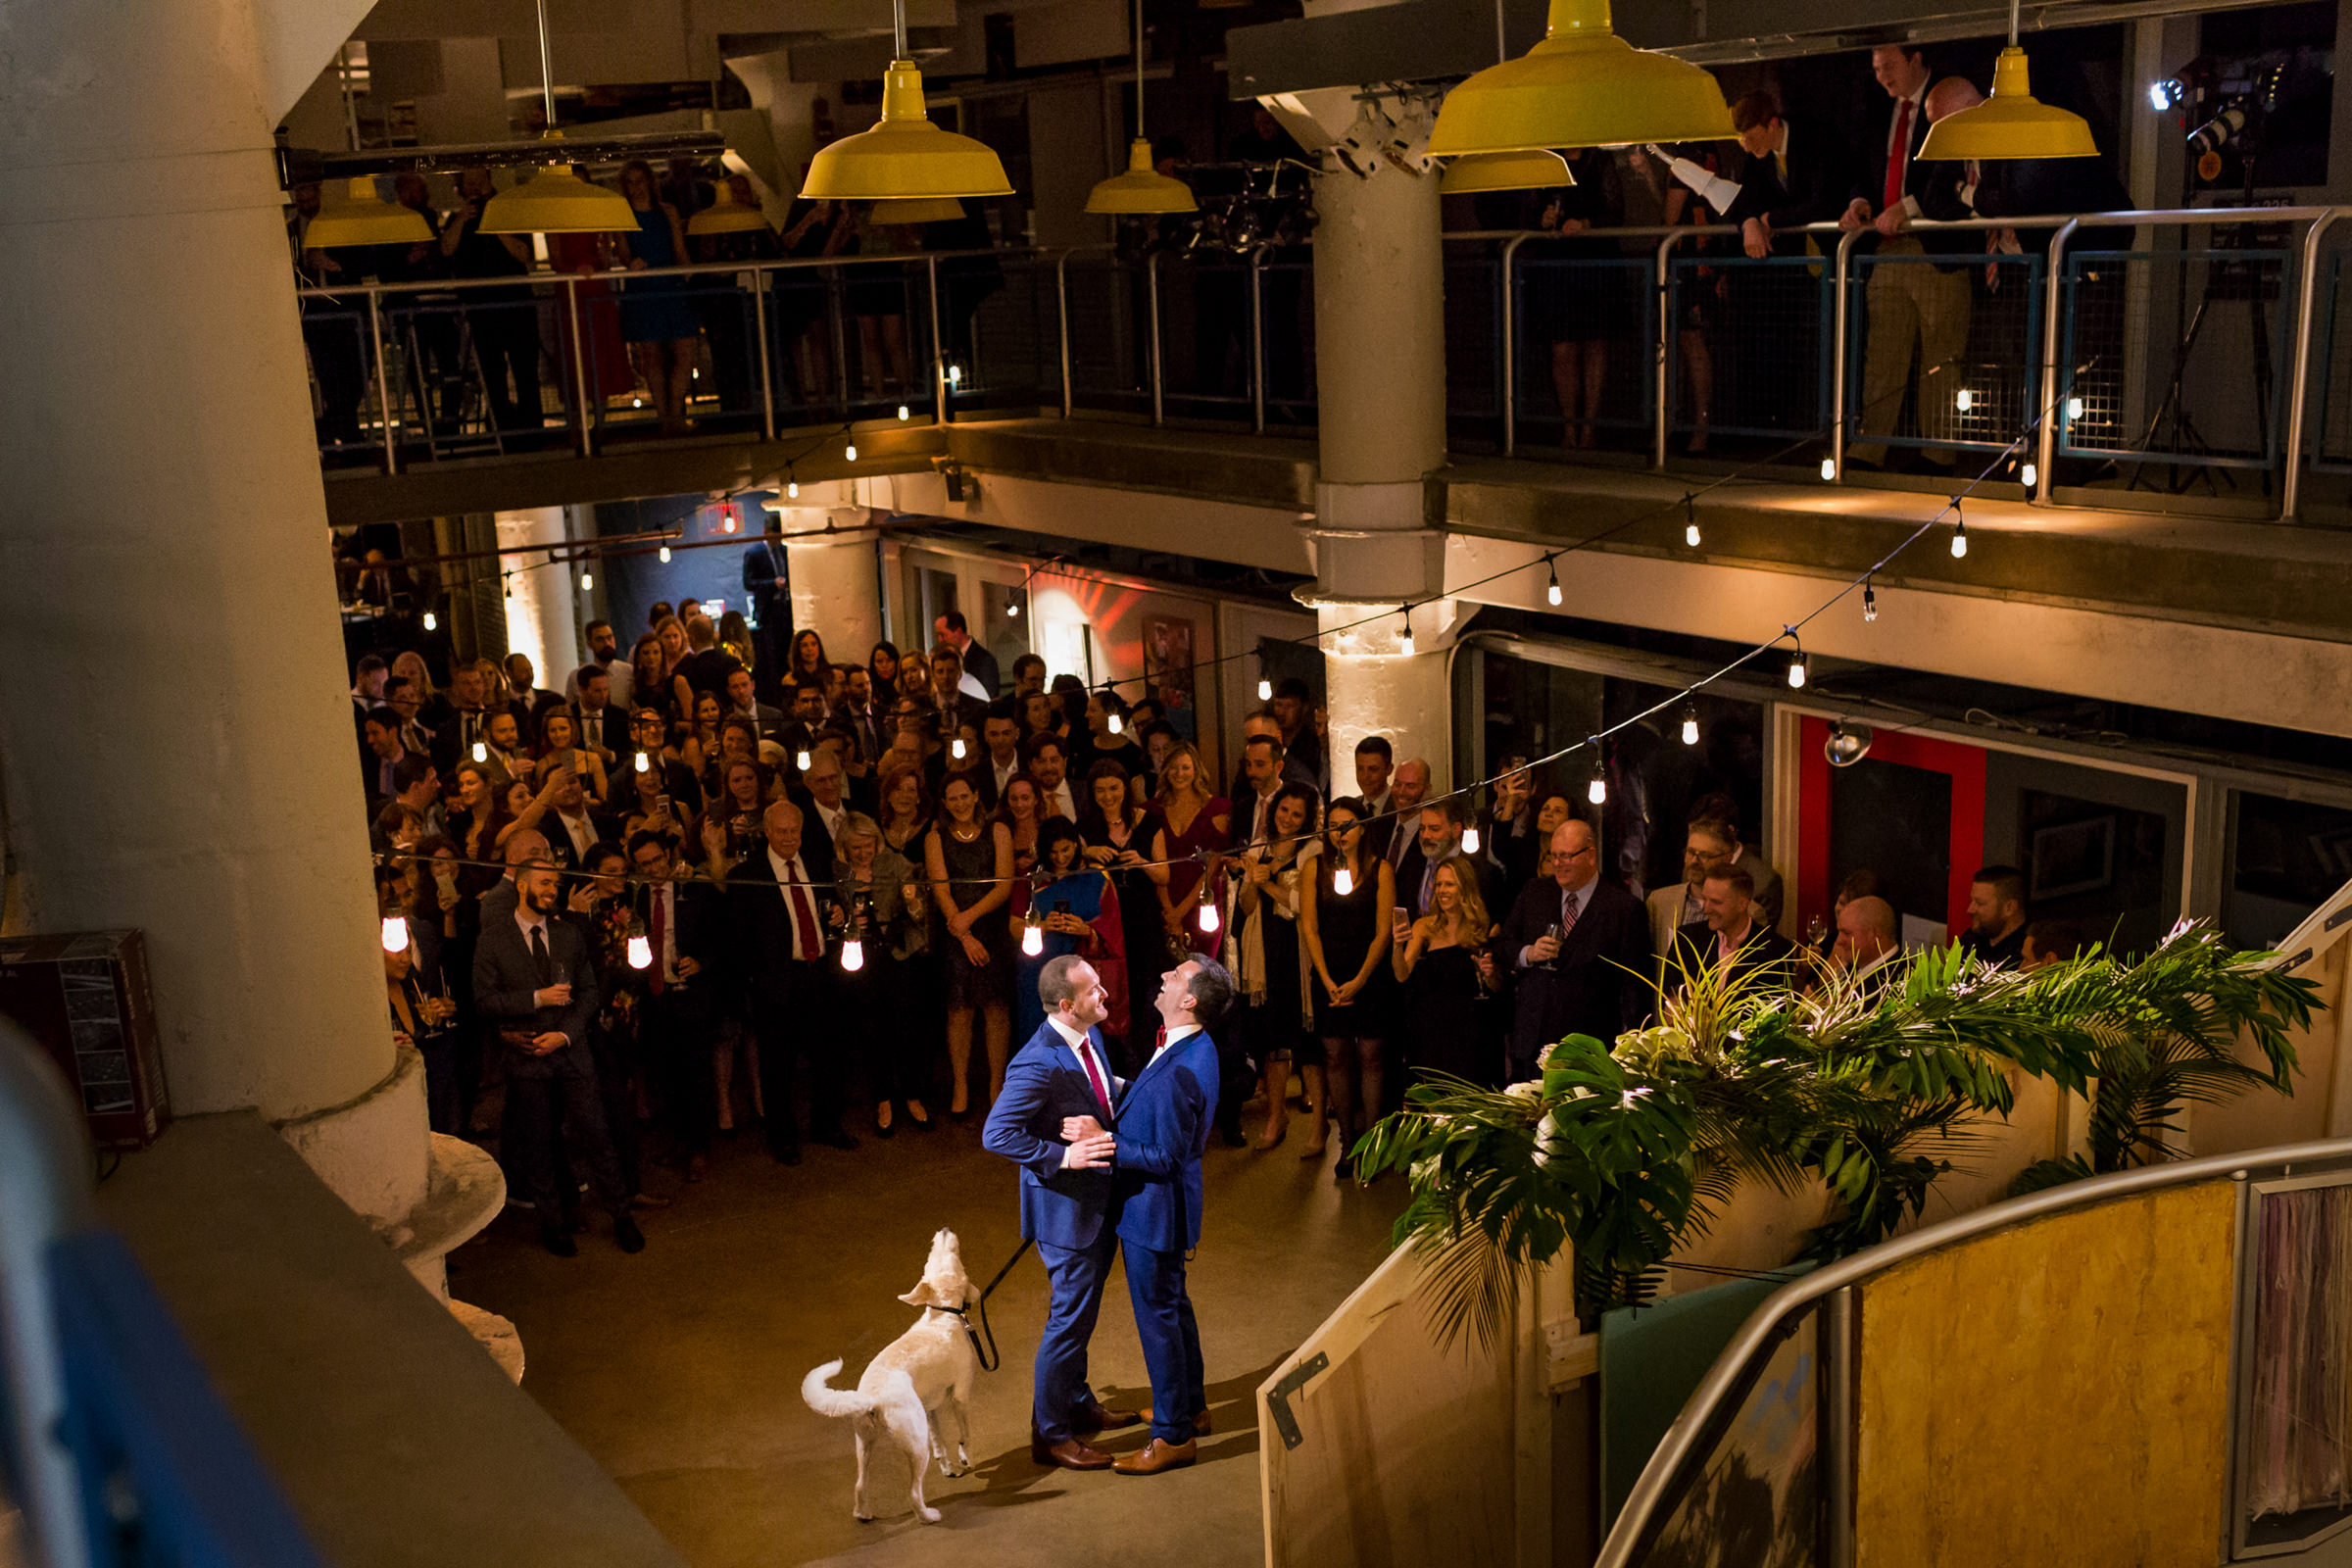 Grooms with dog and their guests - photo by Procopio Photography